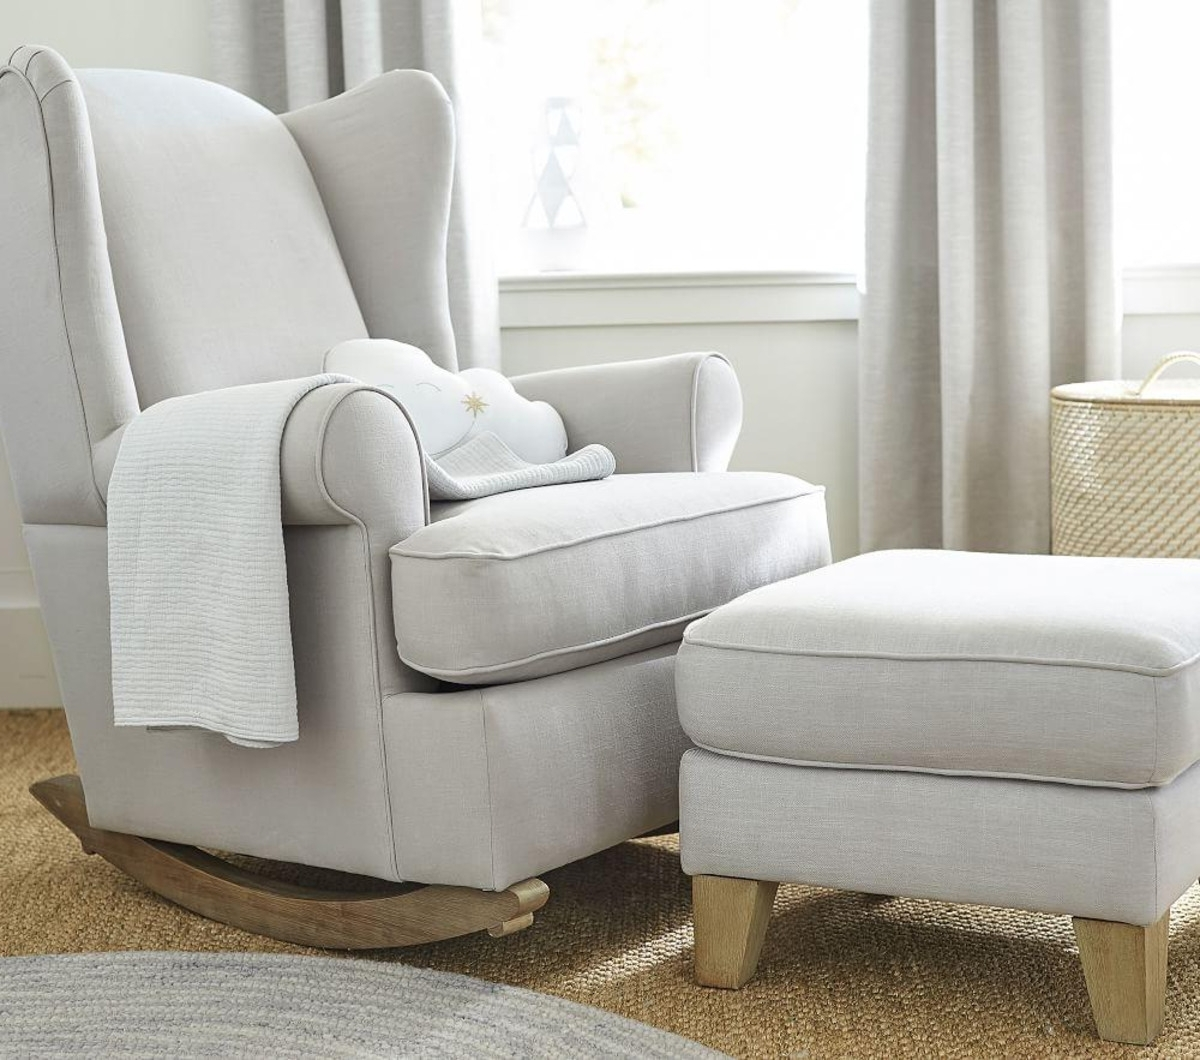 Rocking Chairs For Nursing Intended For Latest Ottomans : Rocking Chair Ottoman The Best Feeding And Nursing Chairs (View 2 of 15)